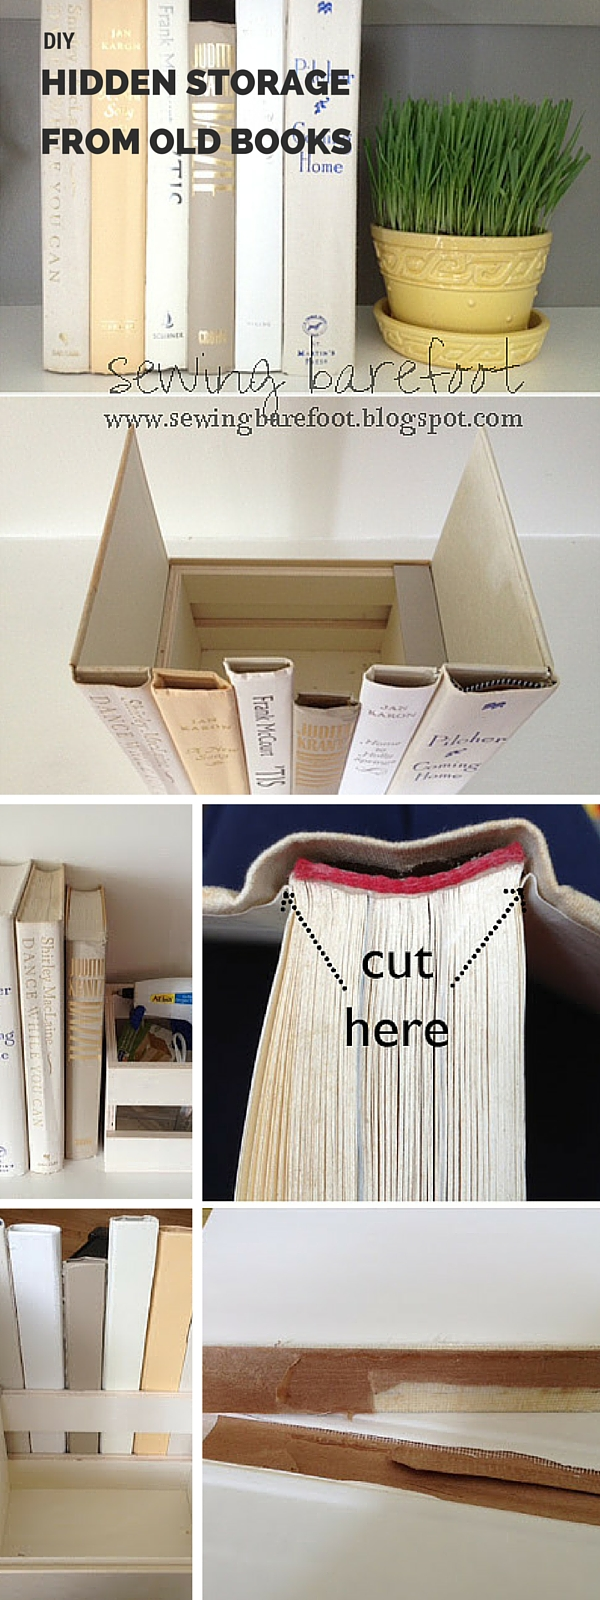 hidden-storage-from-old-books